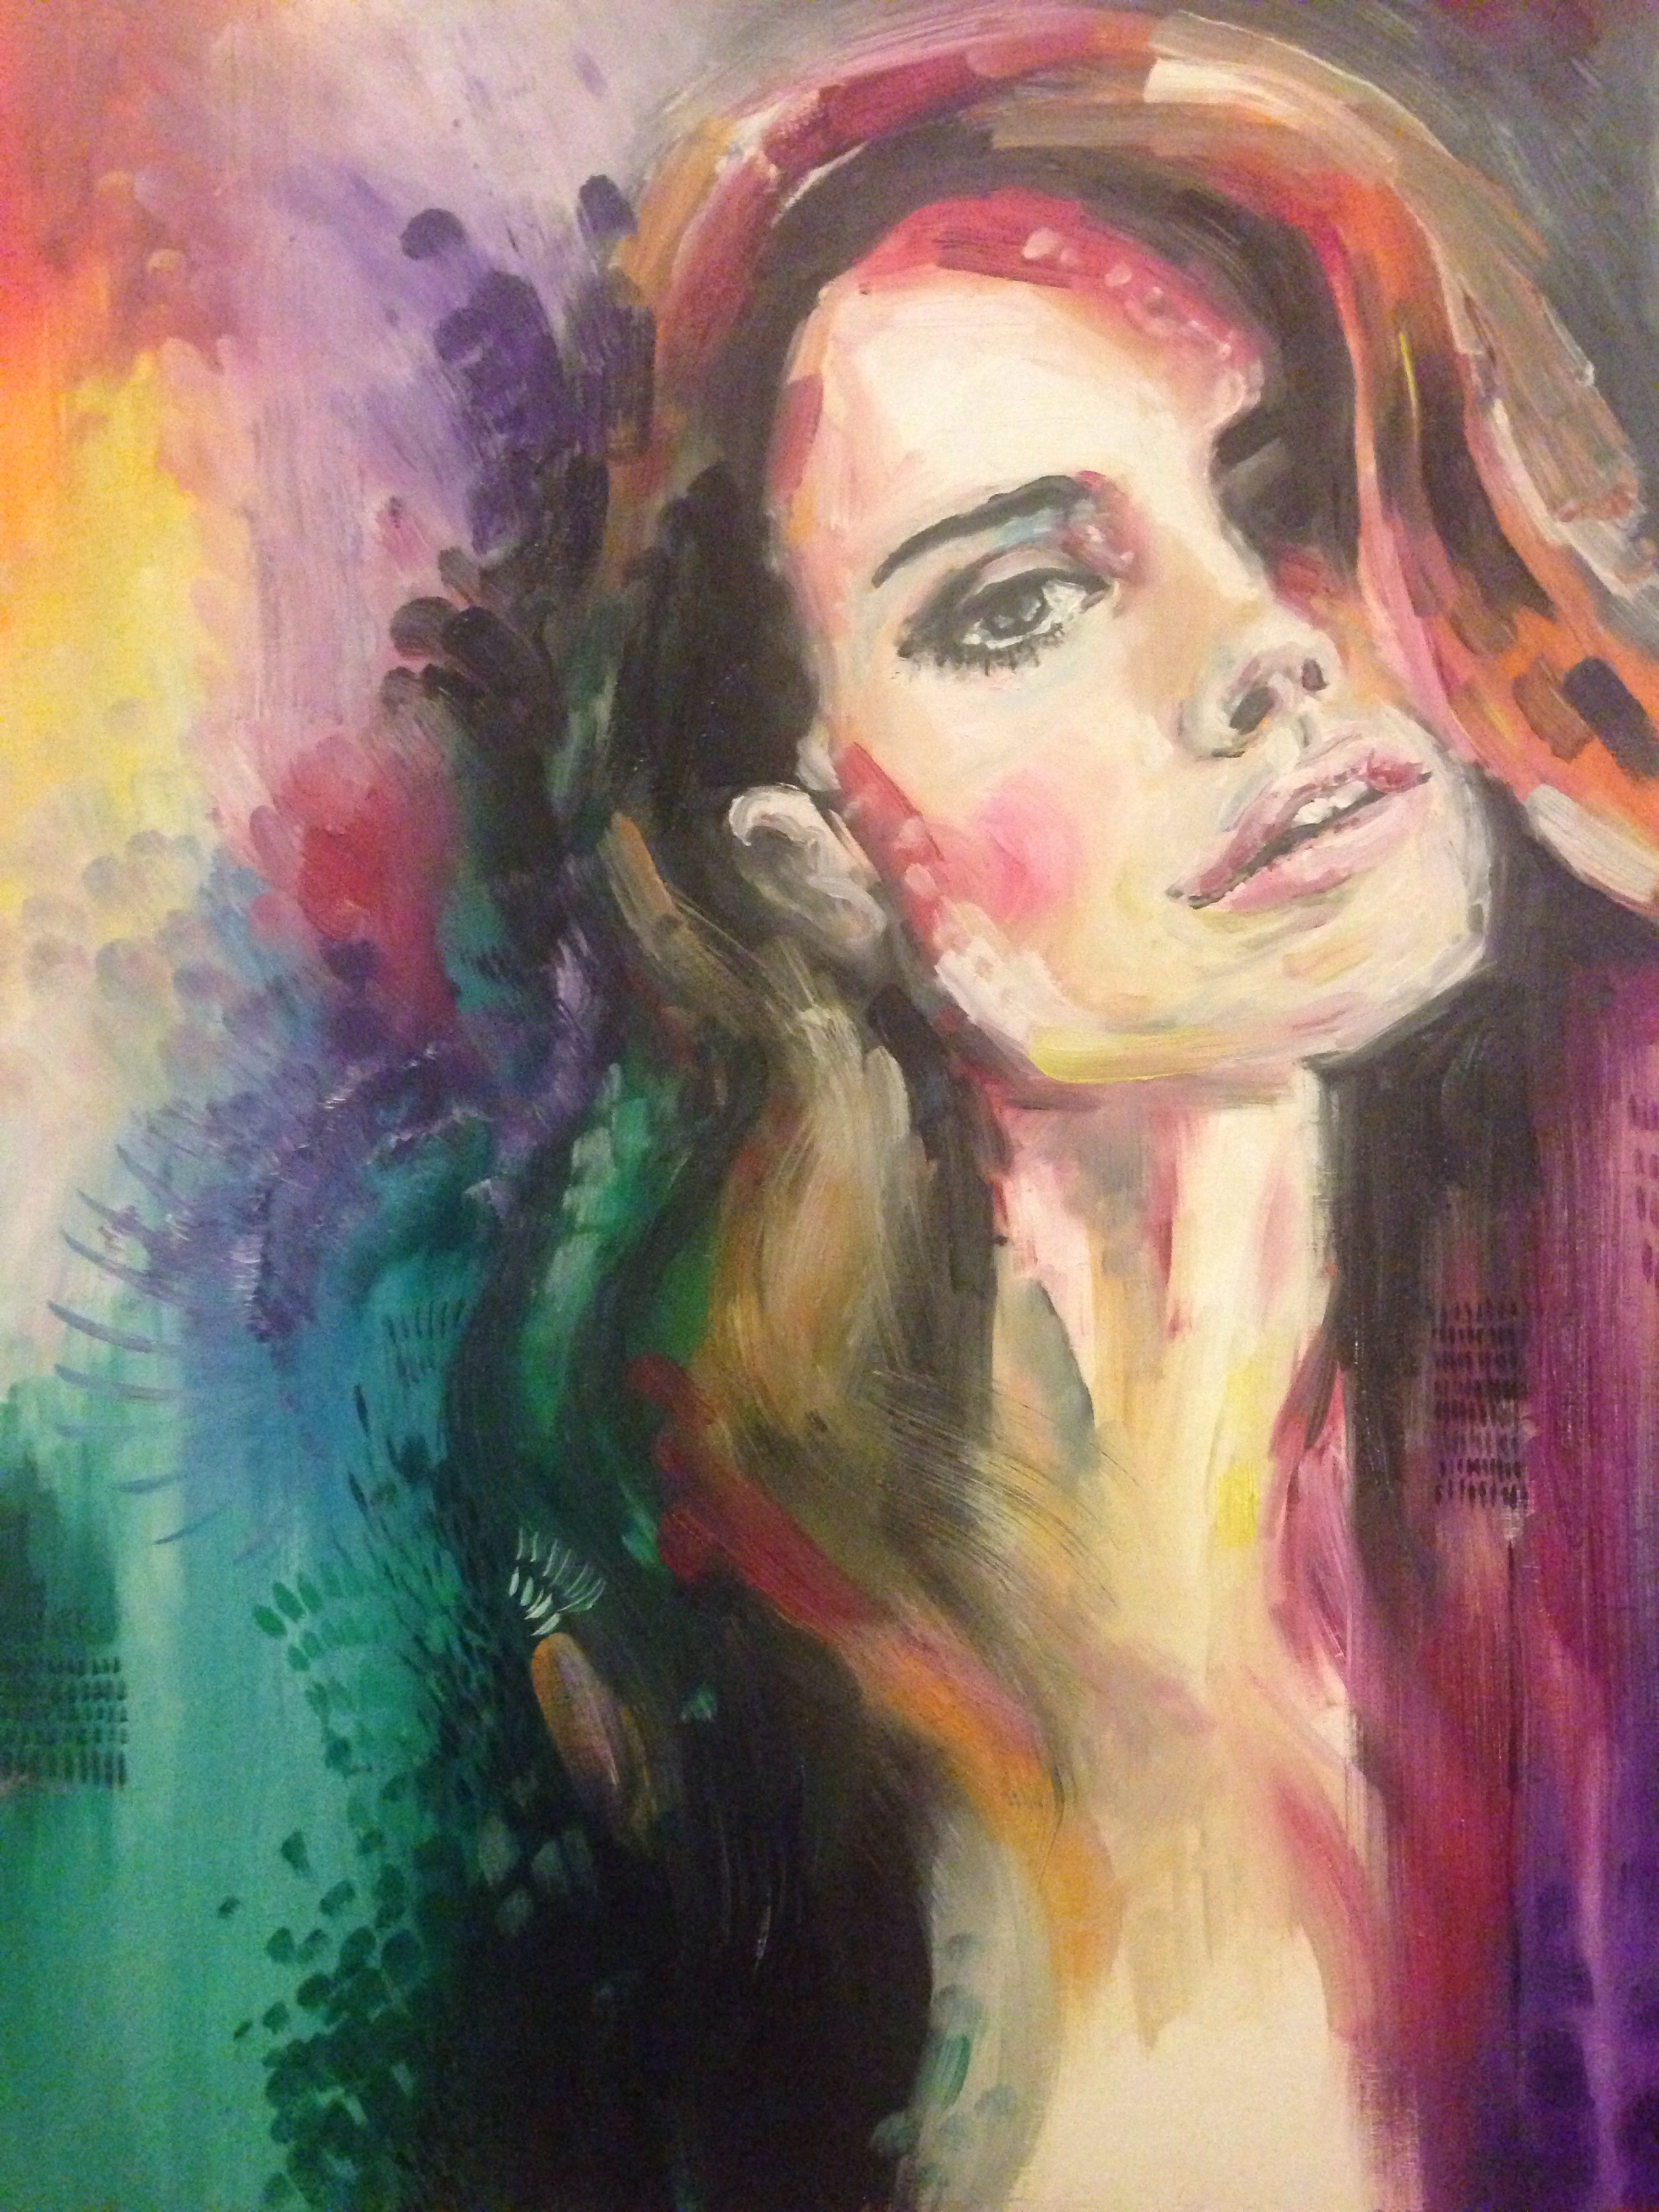 oil paint | Katy Jade Dobson ART